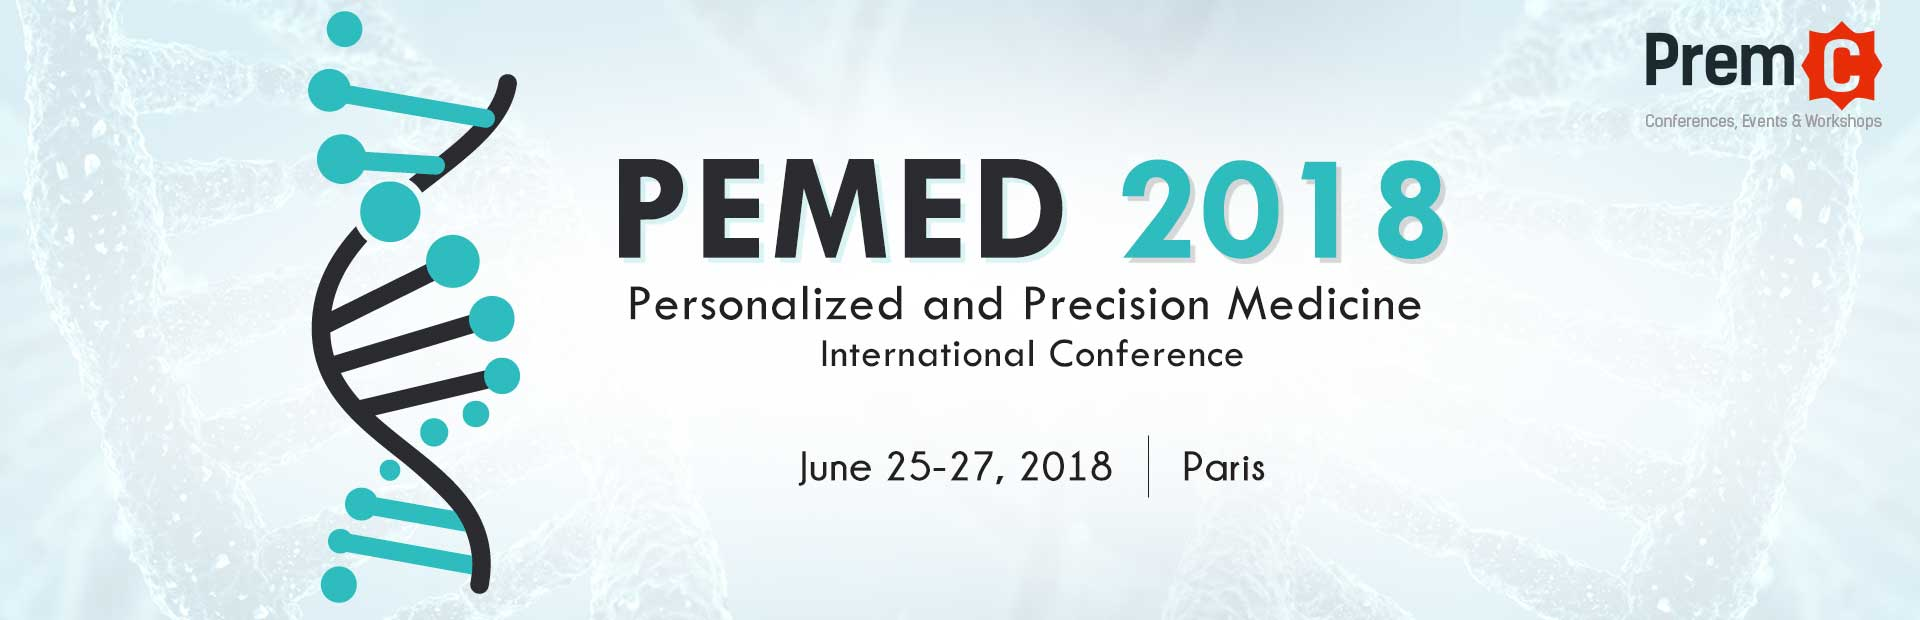 Personalized and Precision Medicine International Conference PEMED 2018